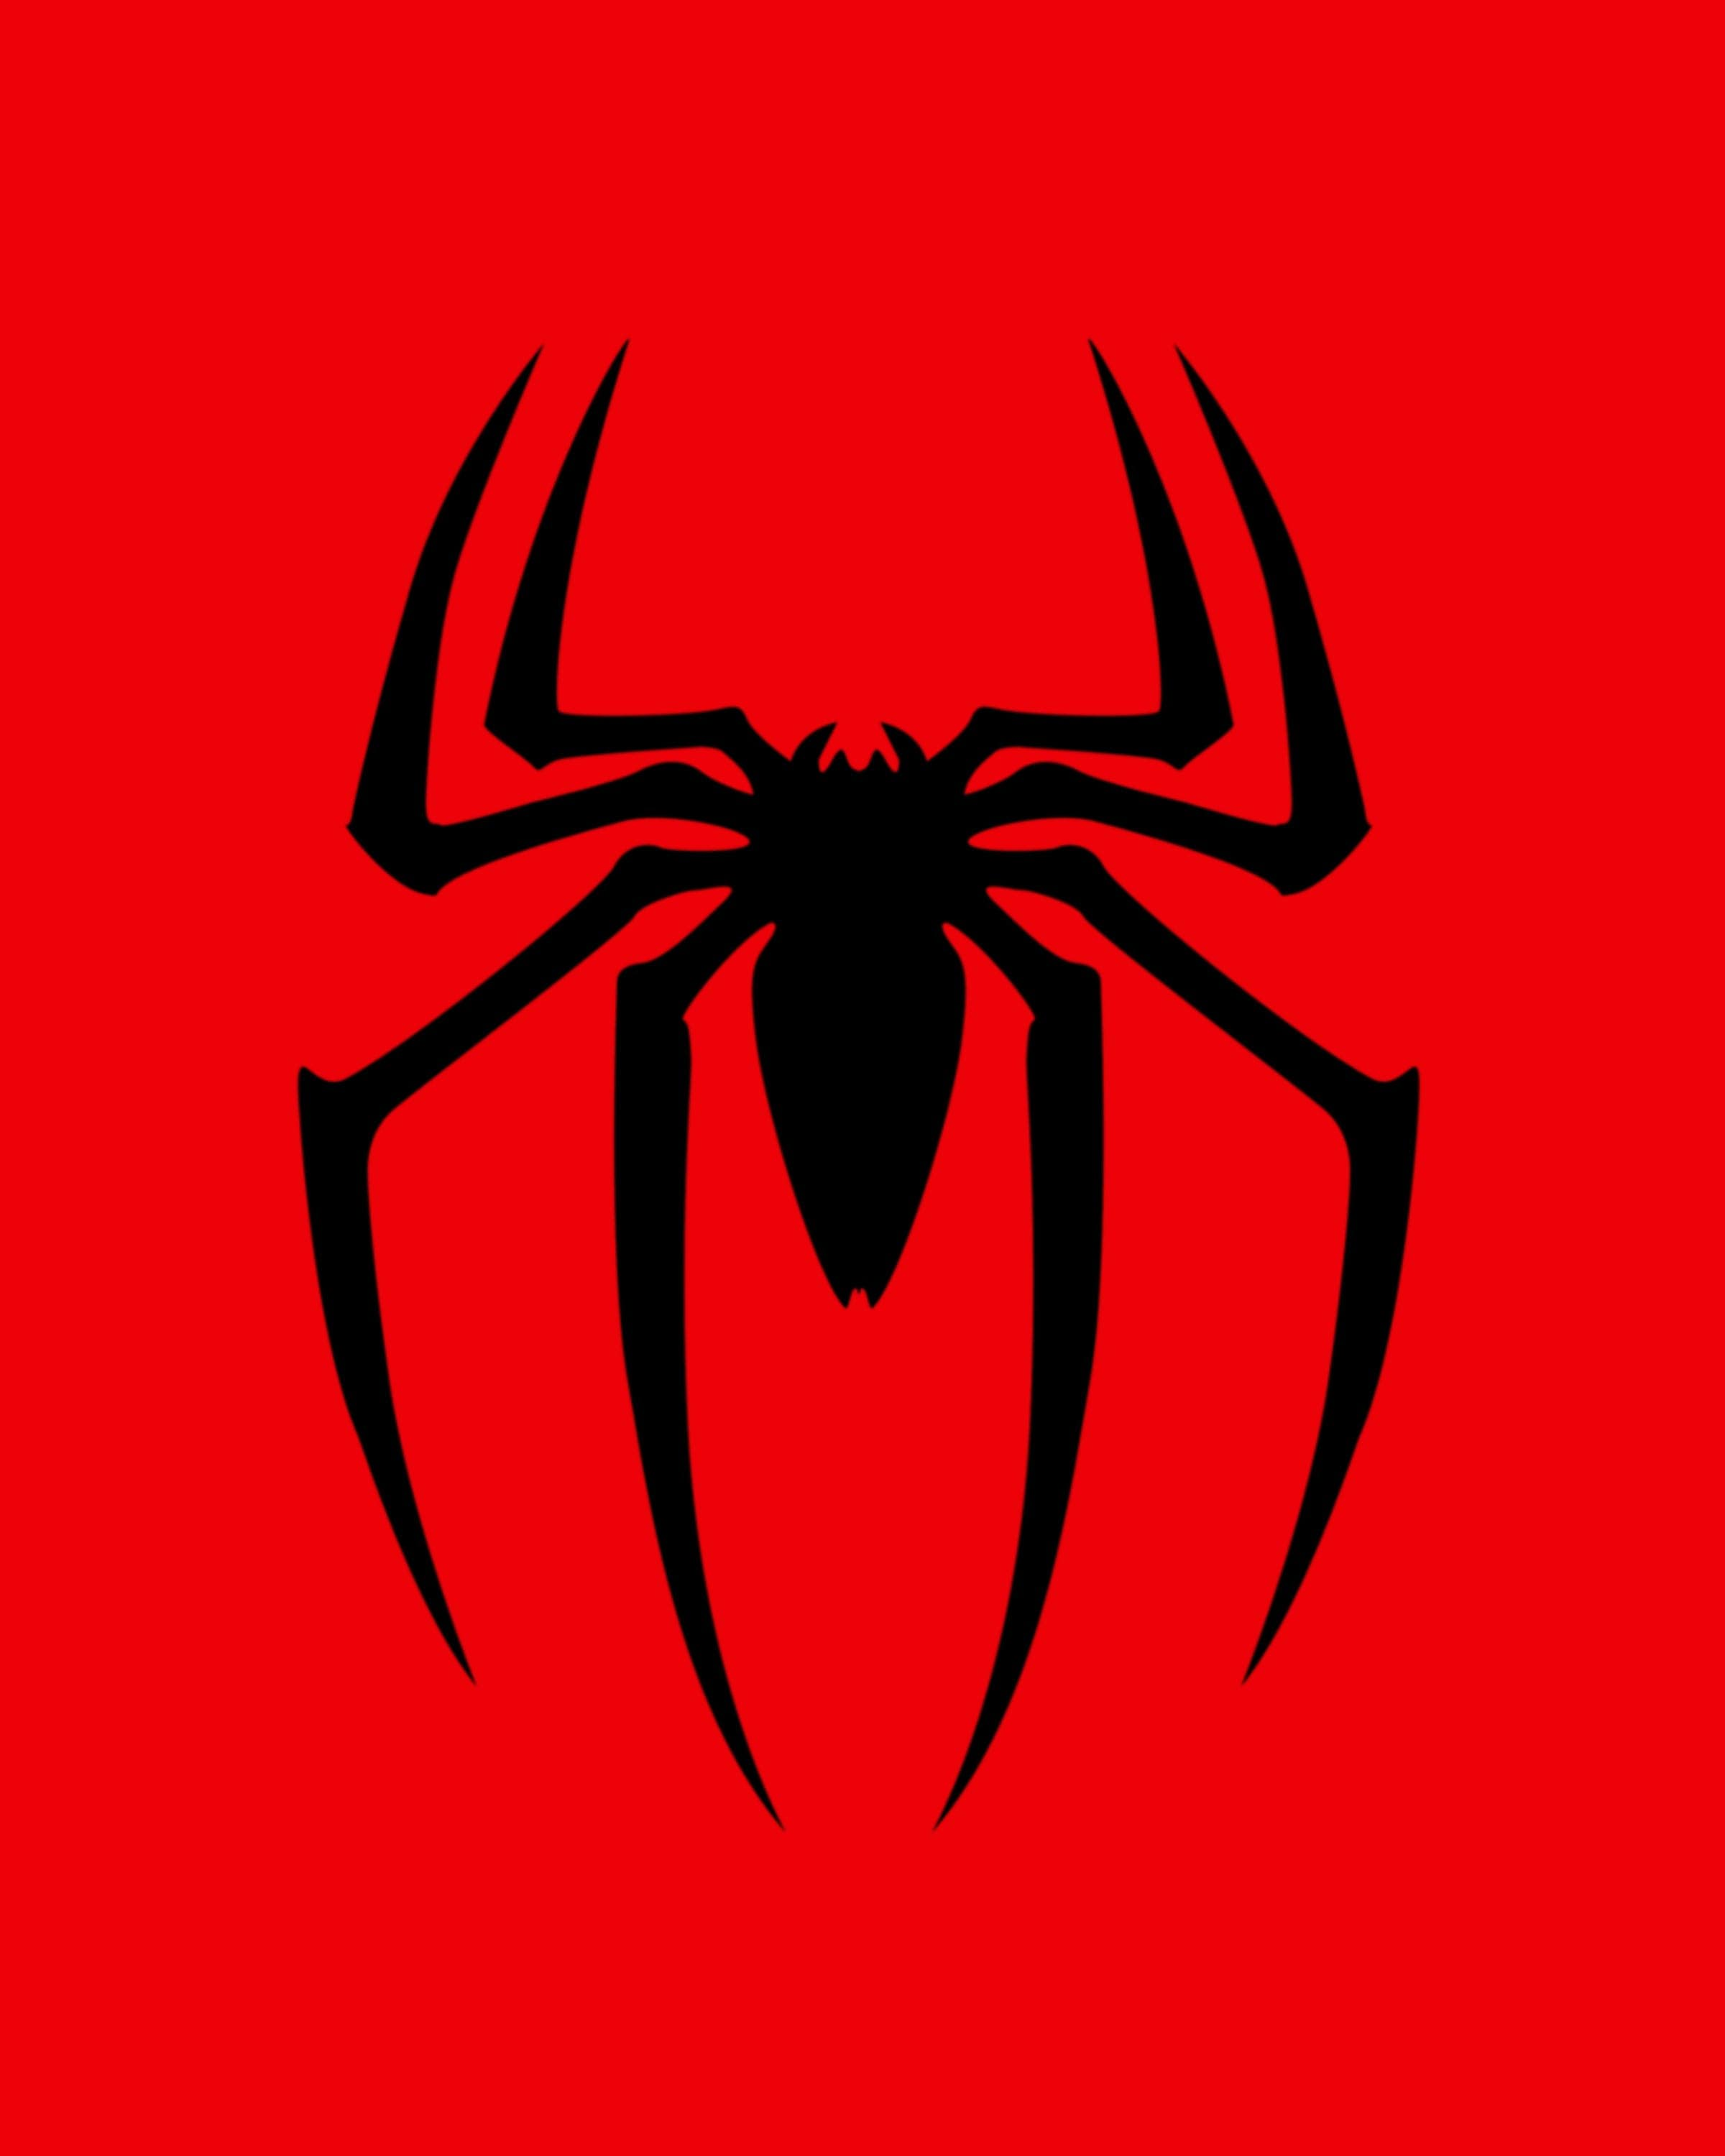 Stampa digitale spiderman simbolo etsy for Stampe da colorare spiderman